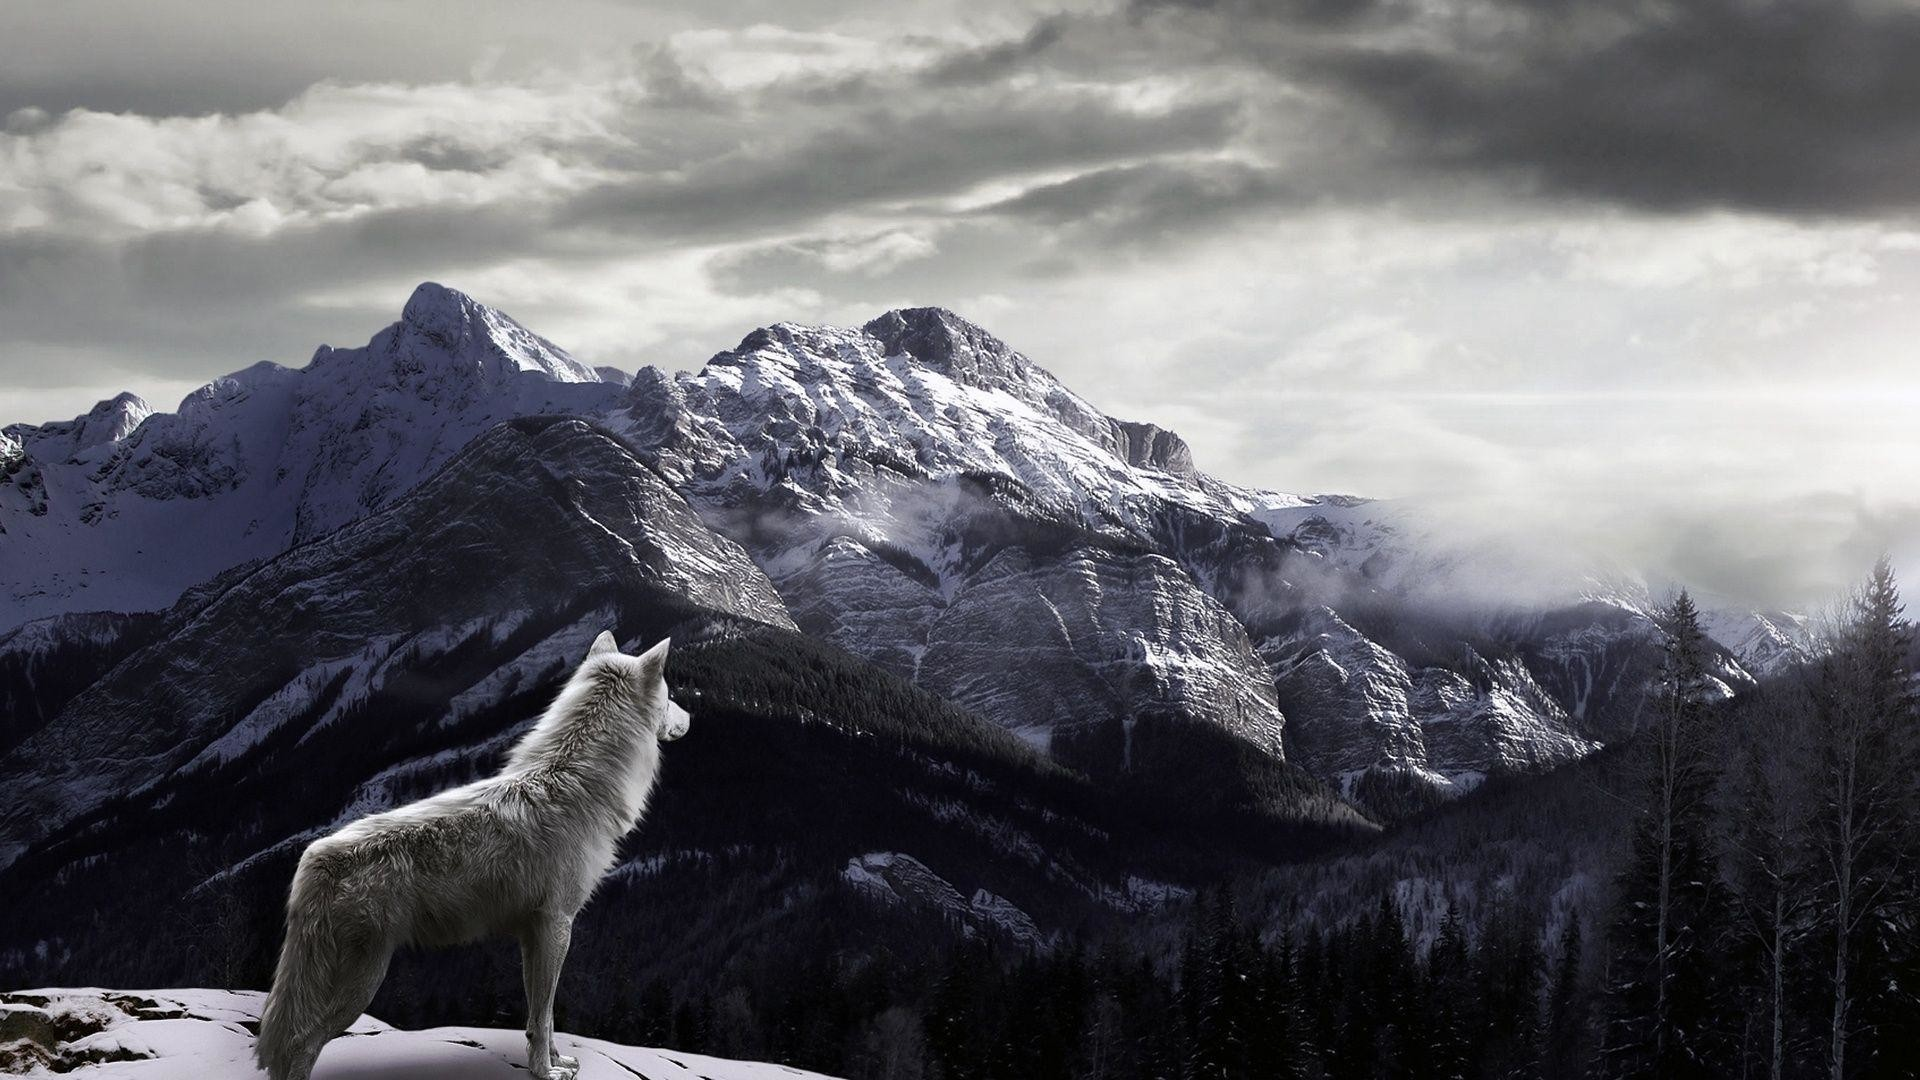 Amazing Wallpaper Macbook Wolf - 887255-free-wolf-wallpaper-pictures-1920x1080-for-macbook  Picture_894020.jpg